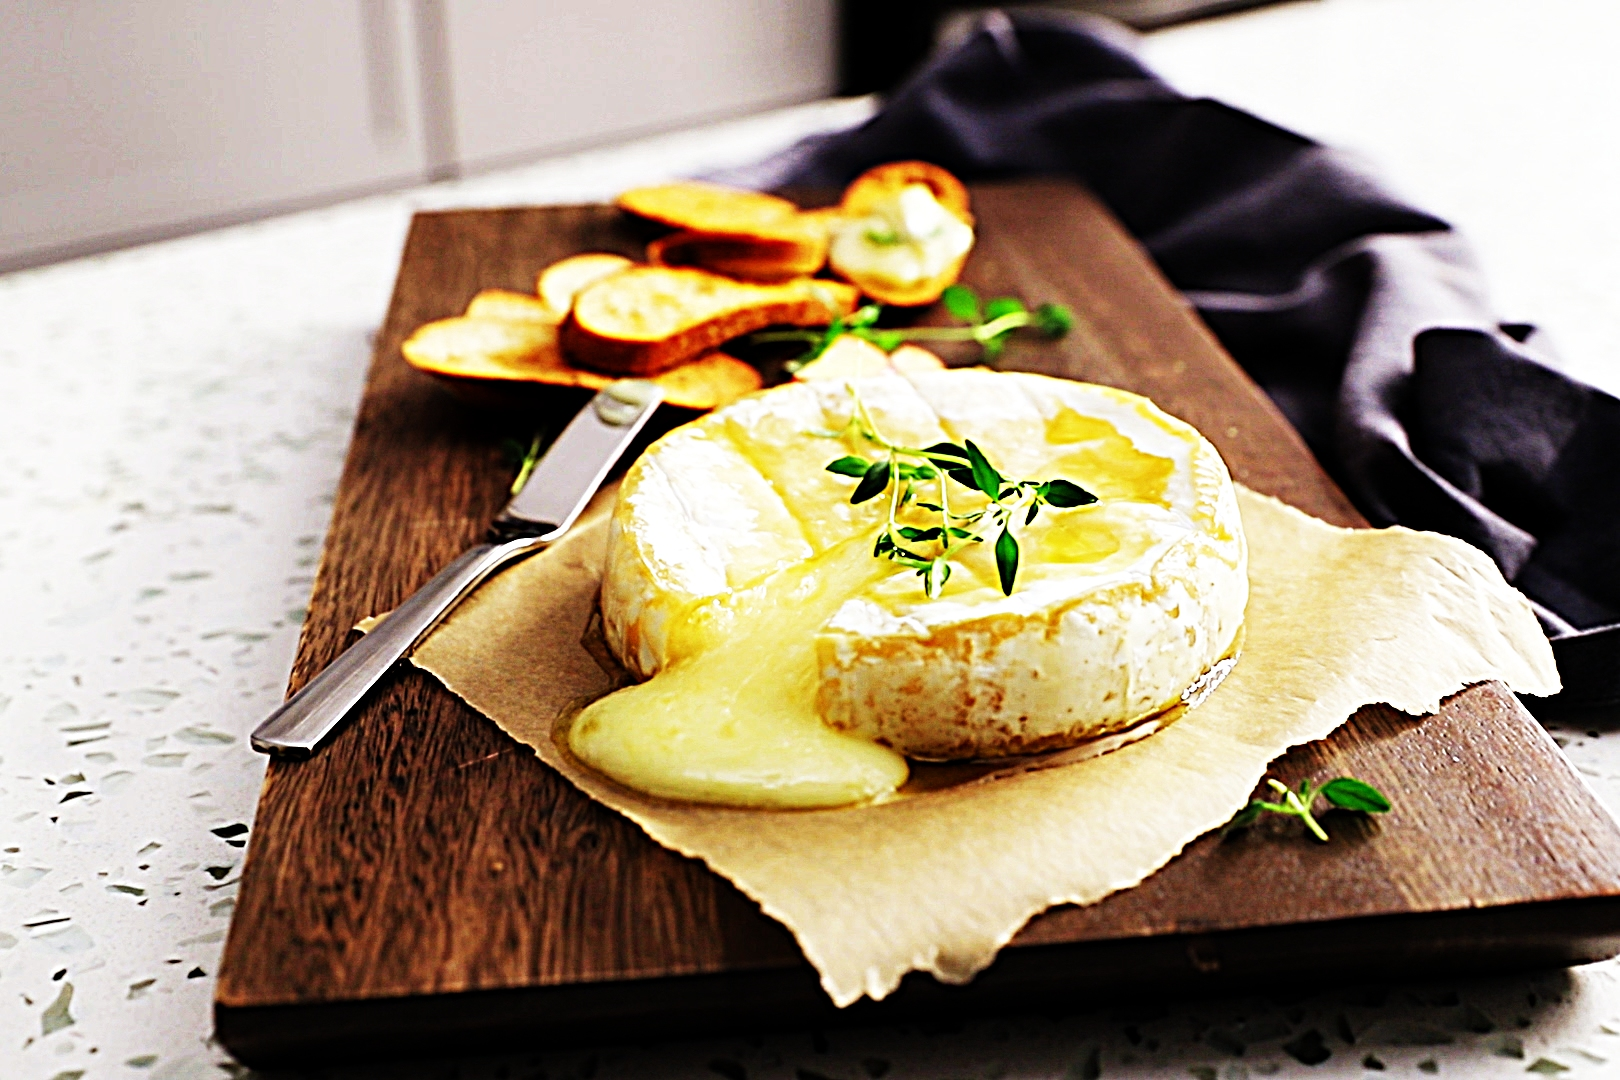 Stupid-Easy Recipe for Easy Baked Brie (#1 Top-Rated)